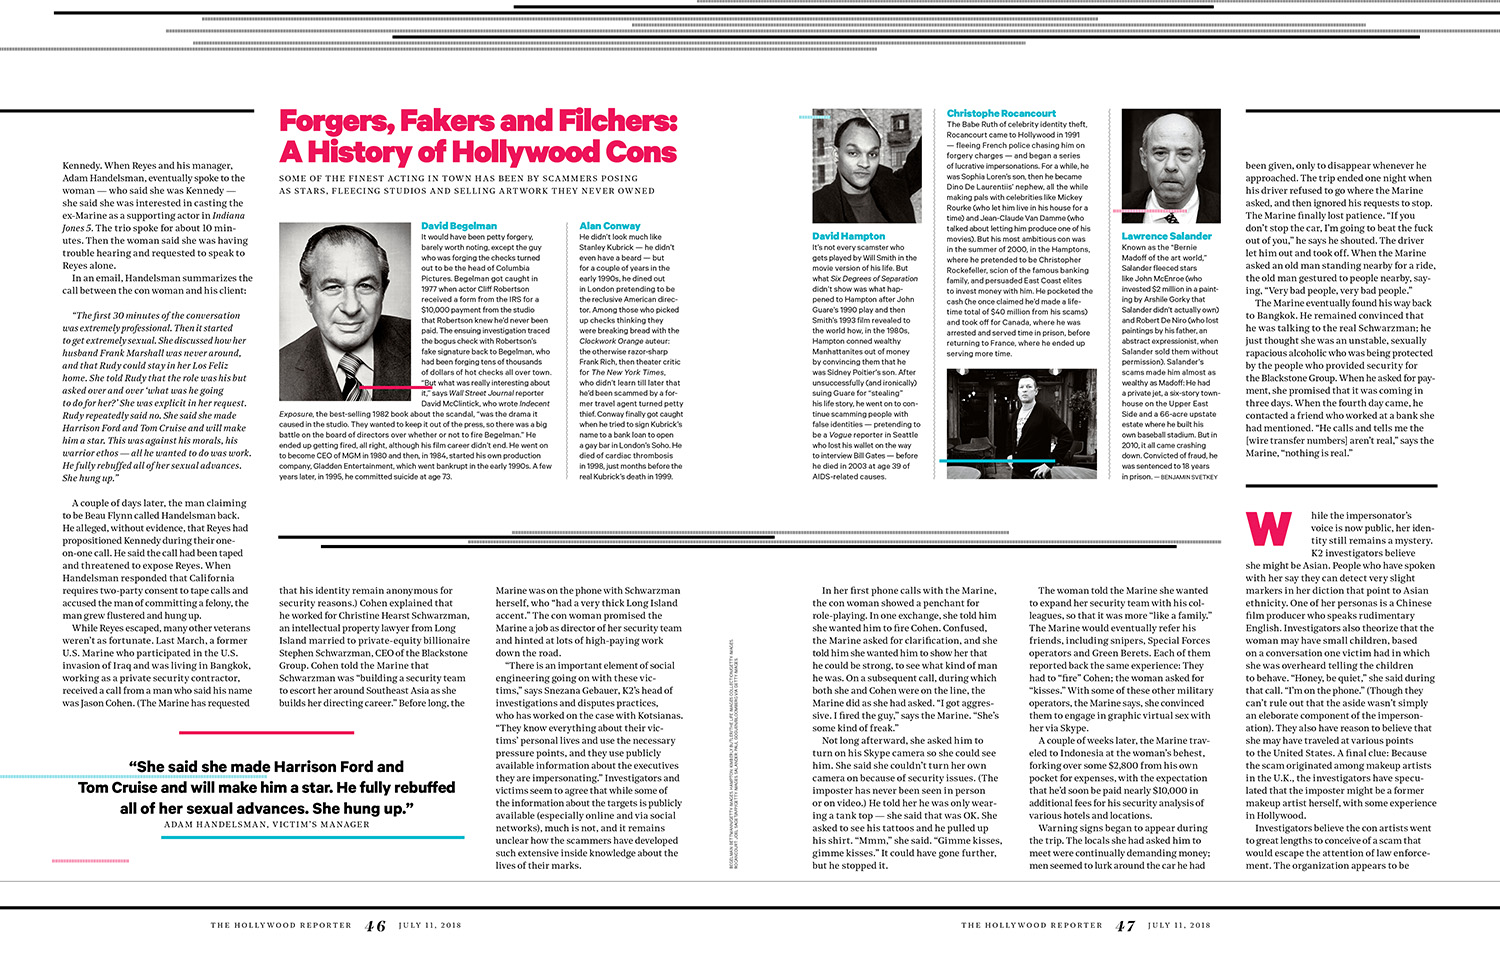 Hunting the Con Queen of Hollywood / The Hollywood Reporter / 7.13.18 / kelsey stefanson / art direction + graphic design / yeskelsey.com